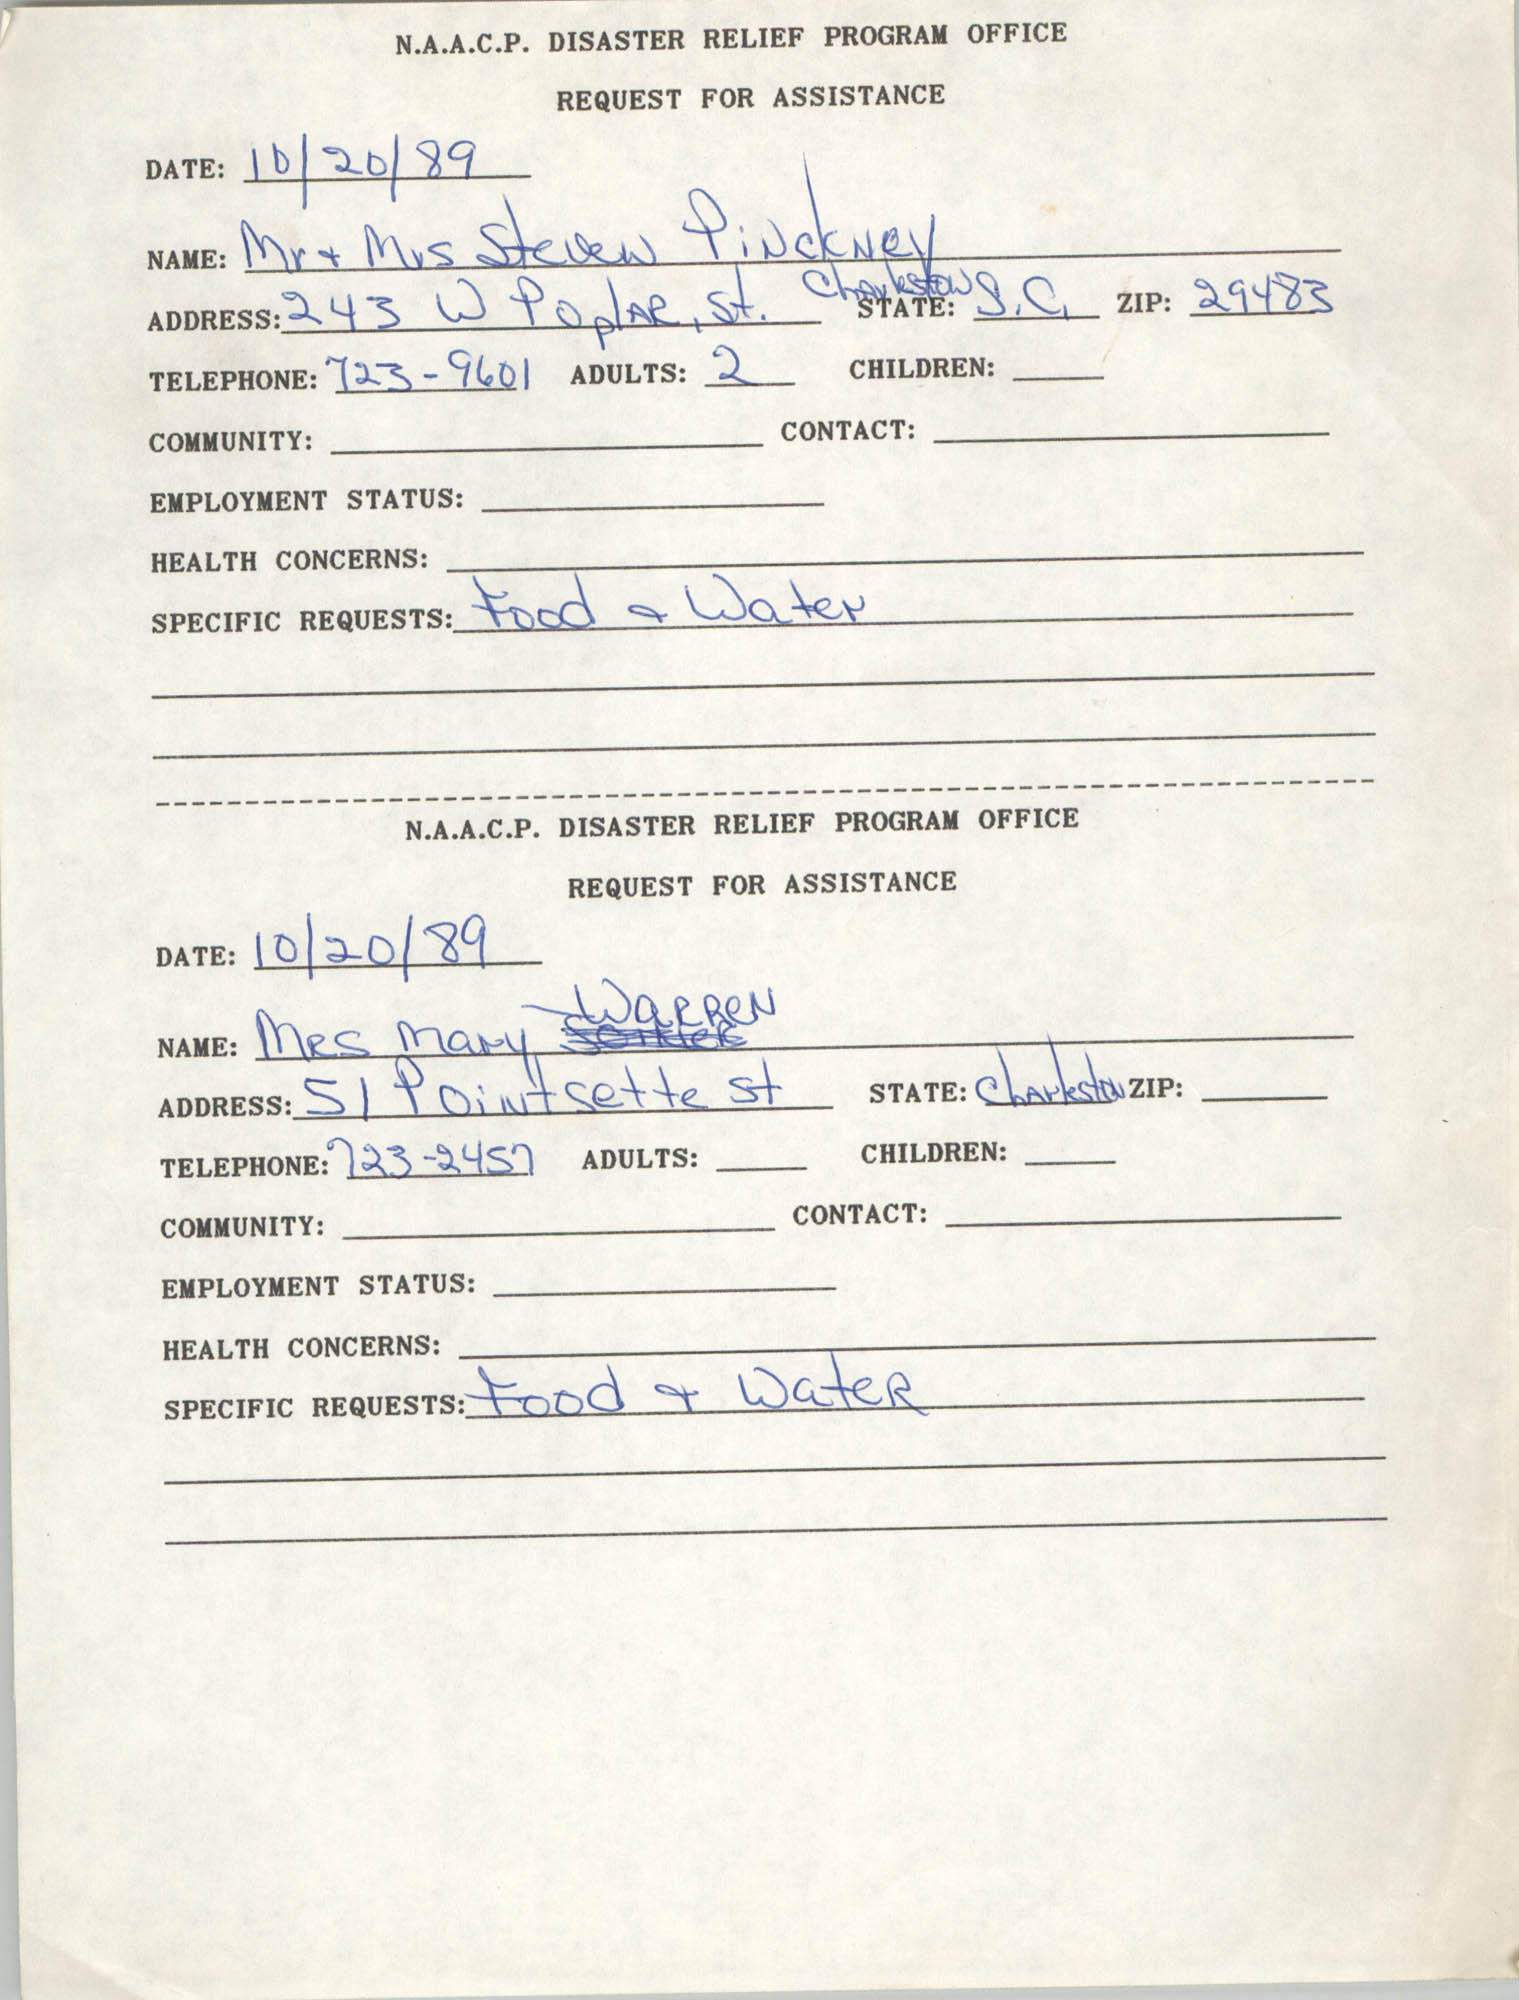 NAACP Disaster Relief Program Office, Hurricane Huge Requests for Assistance, 1989, Page 45